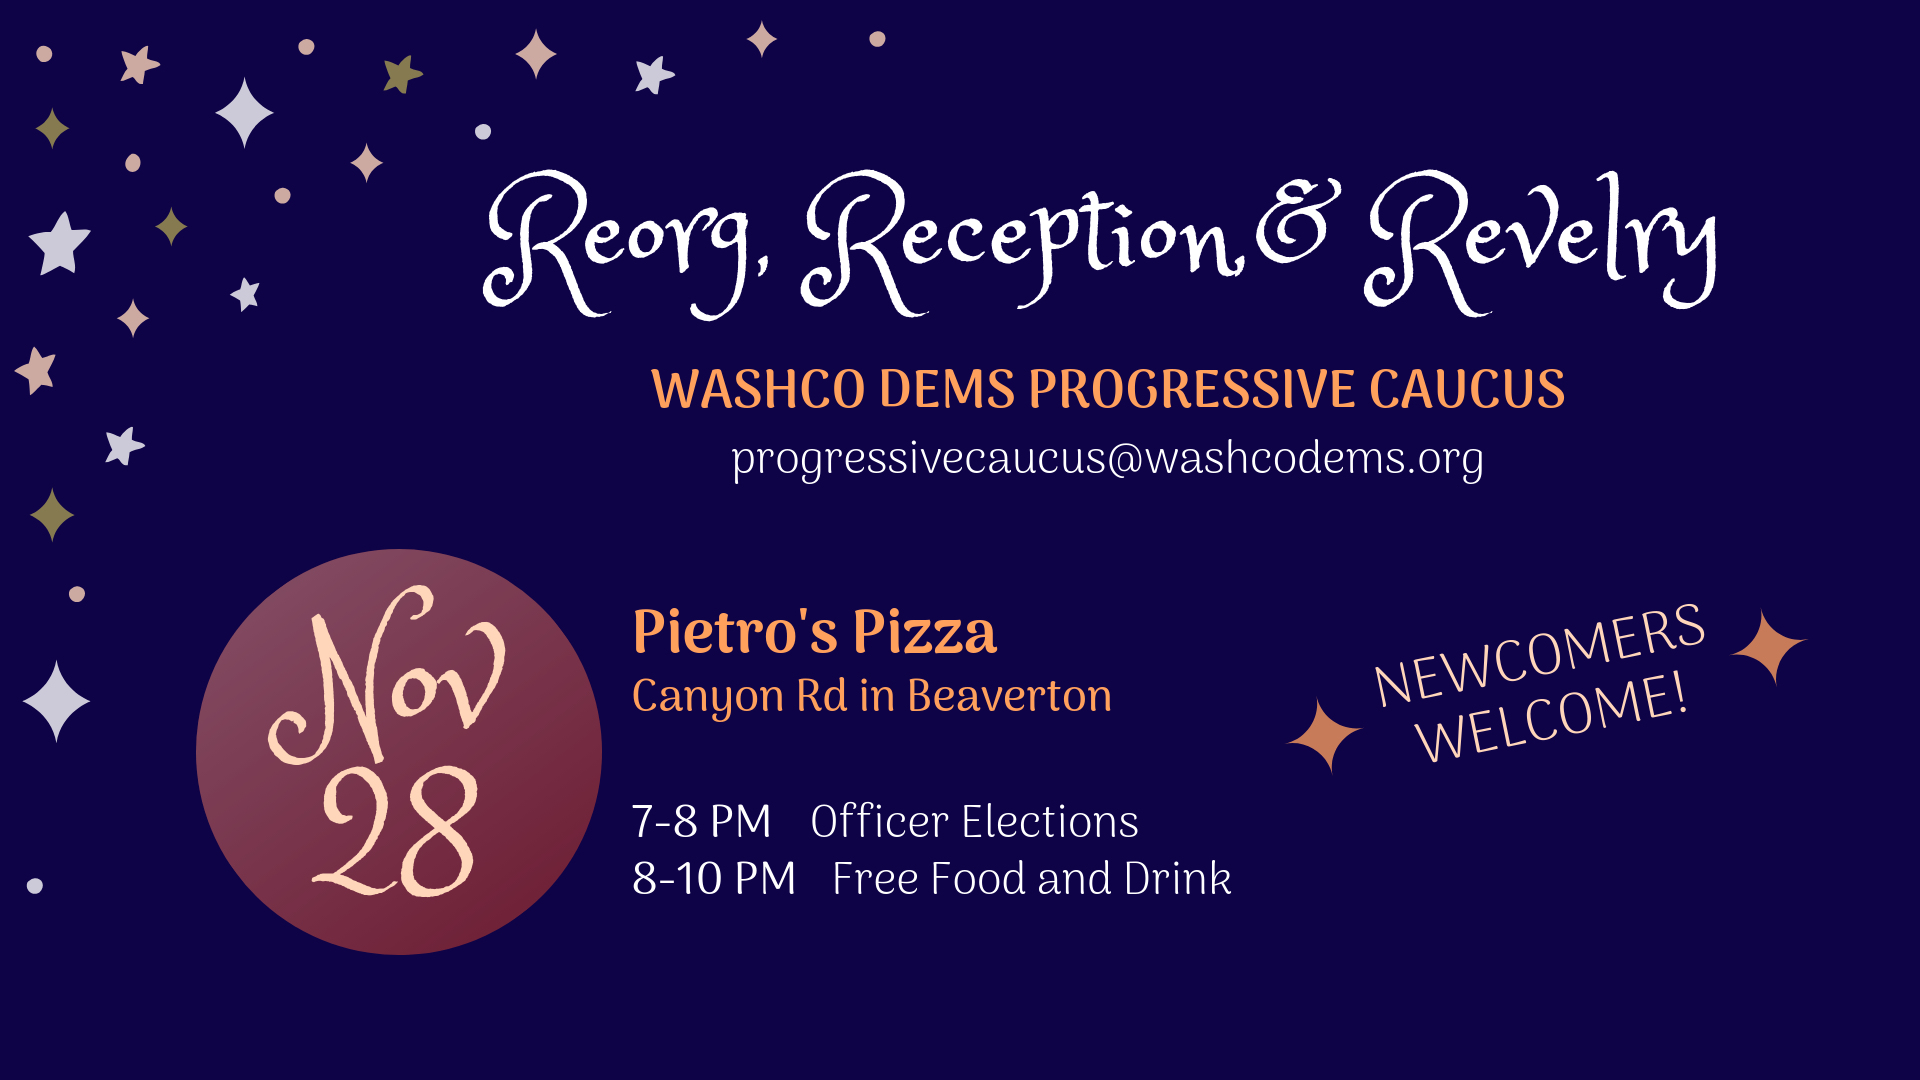 WashCo Dems 2018 Progressive Caucus Reorg and Party